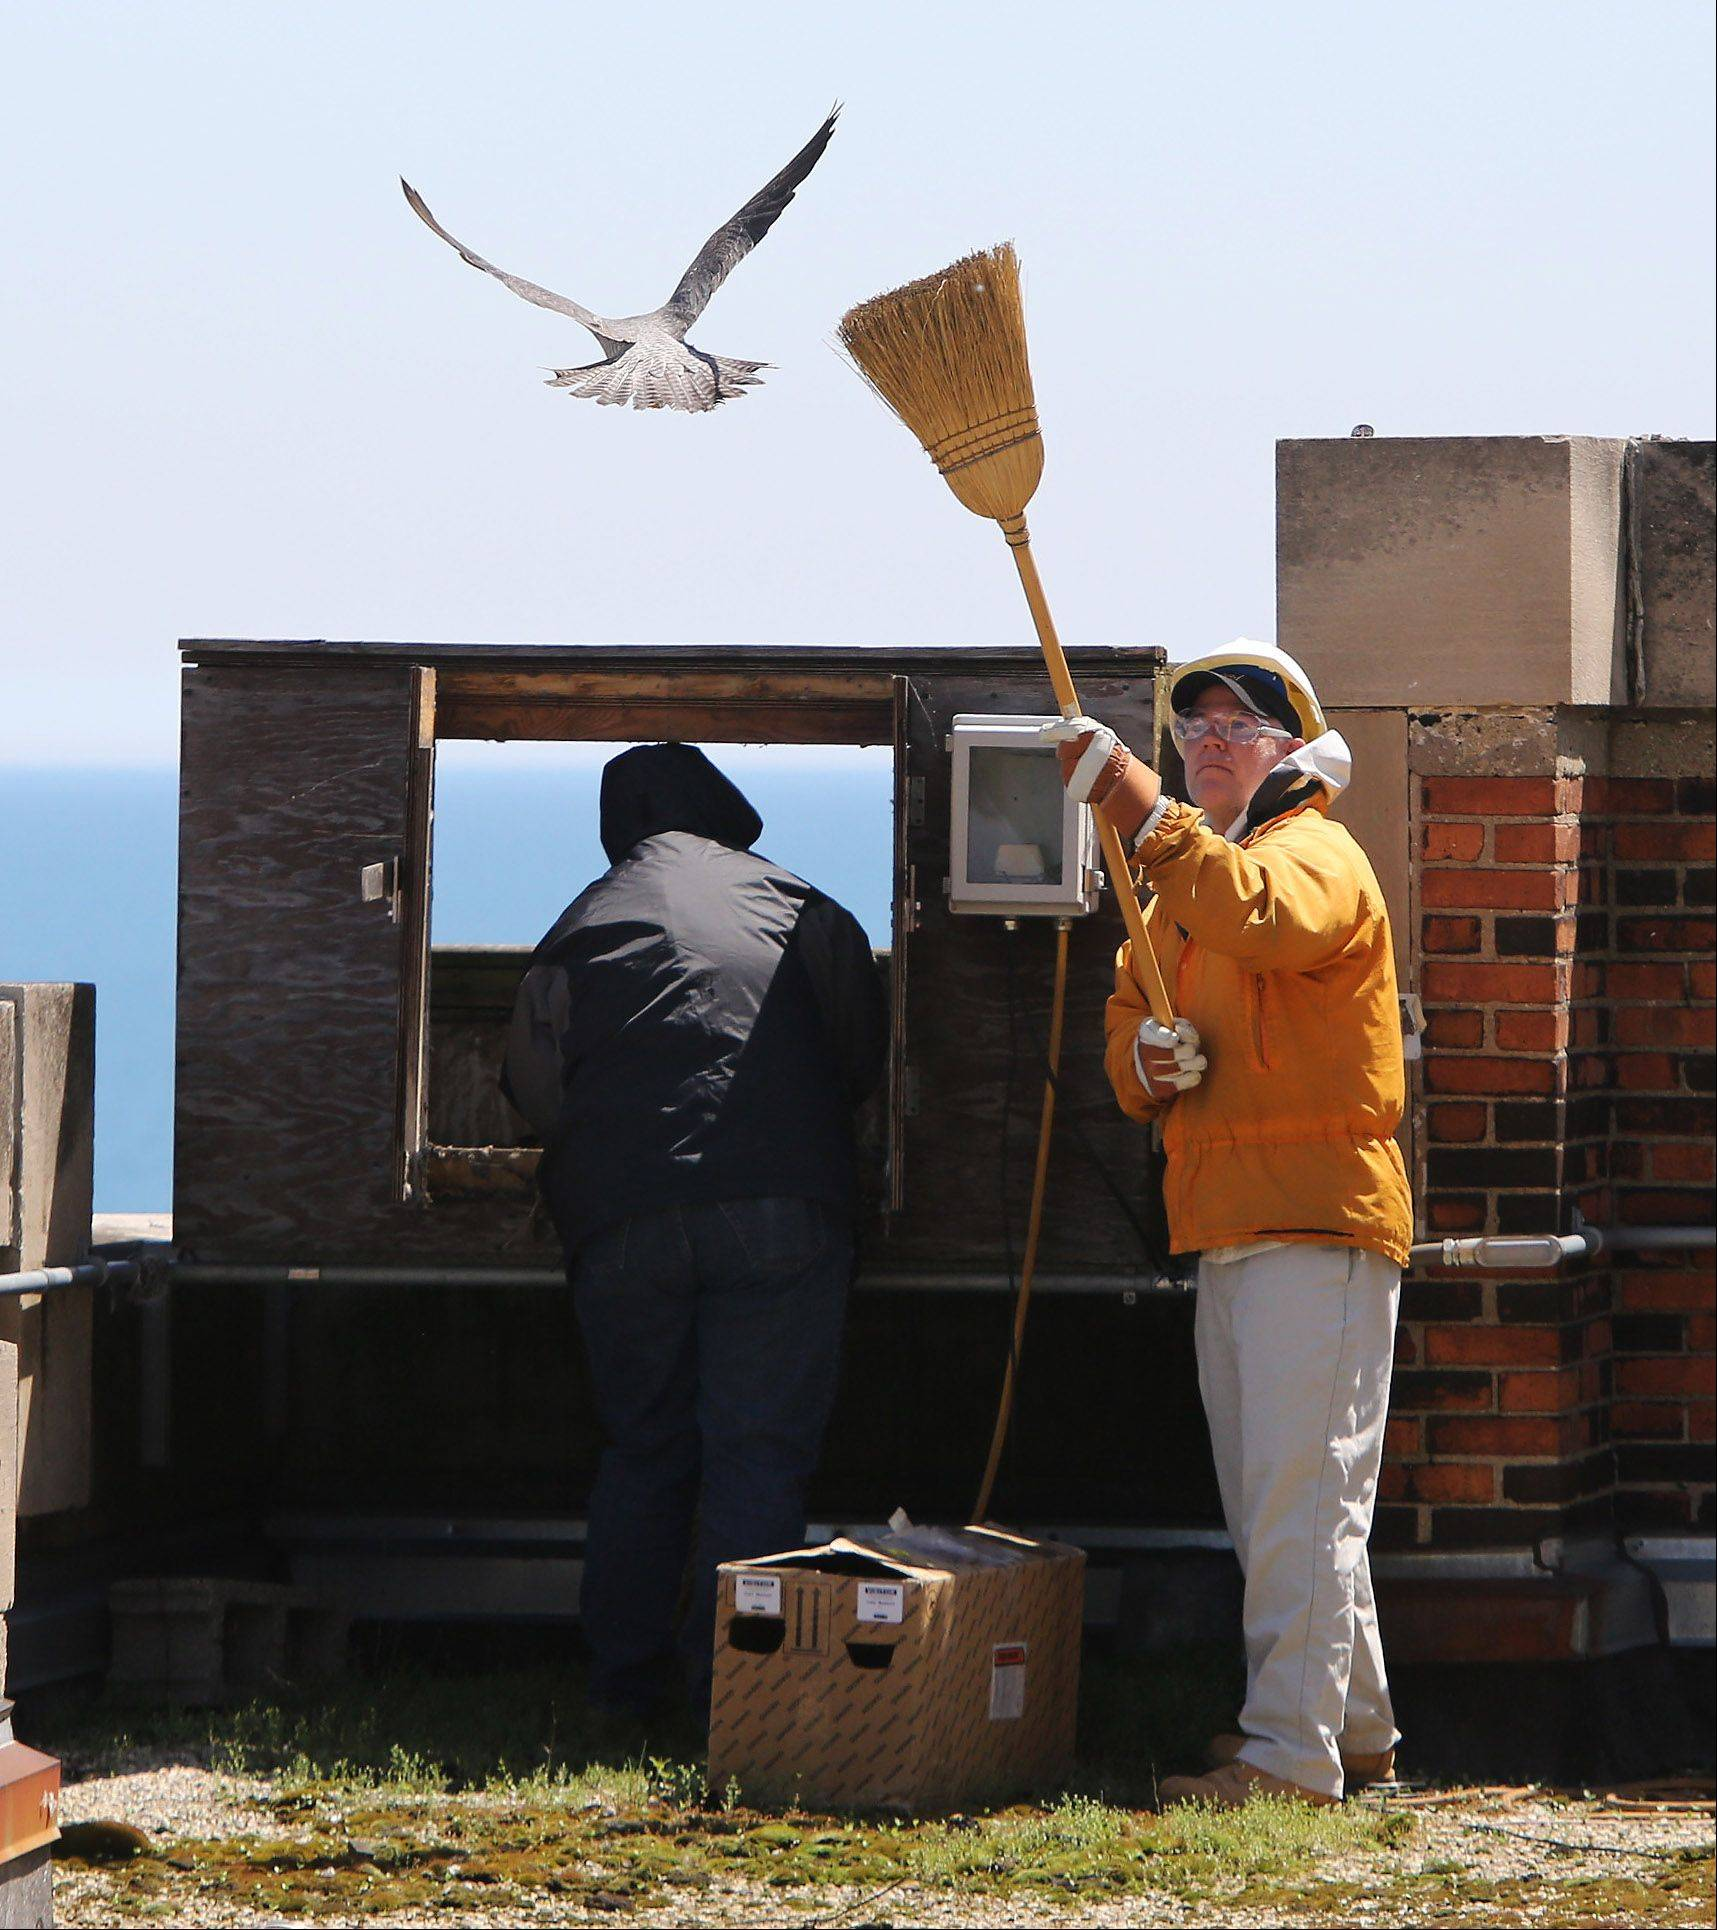 Matt Gies, of the Shedd Aquarium, holds a broom as a diversion to protect Mary Hennen, of the Field Museum of Natural History, from swooping falcons. The pair had to remove the chicks from a man-made nest at the Waukegan Generating Station for banding, while ducking the concerned parents.